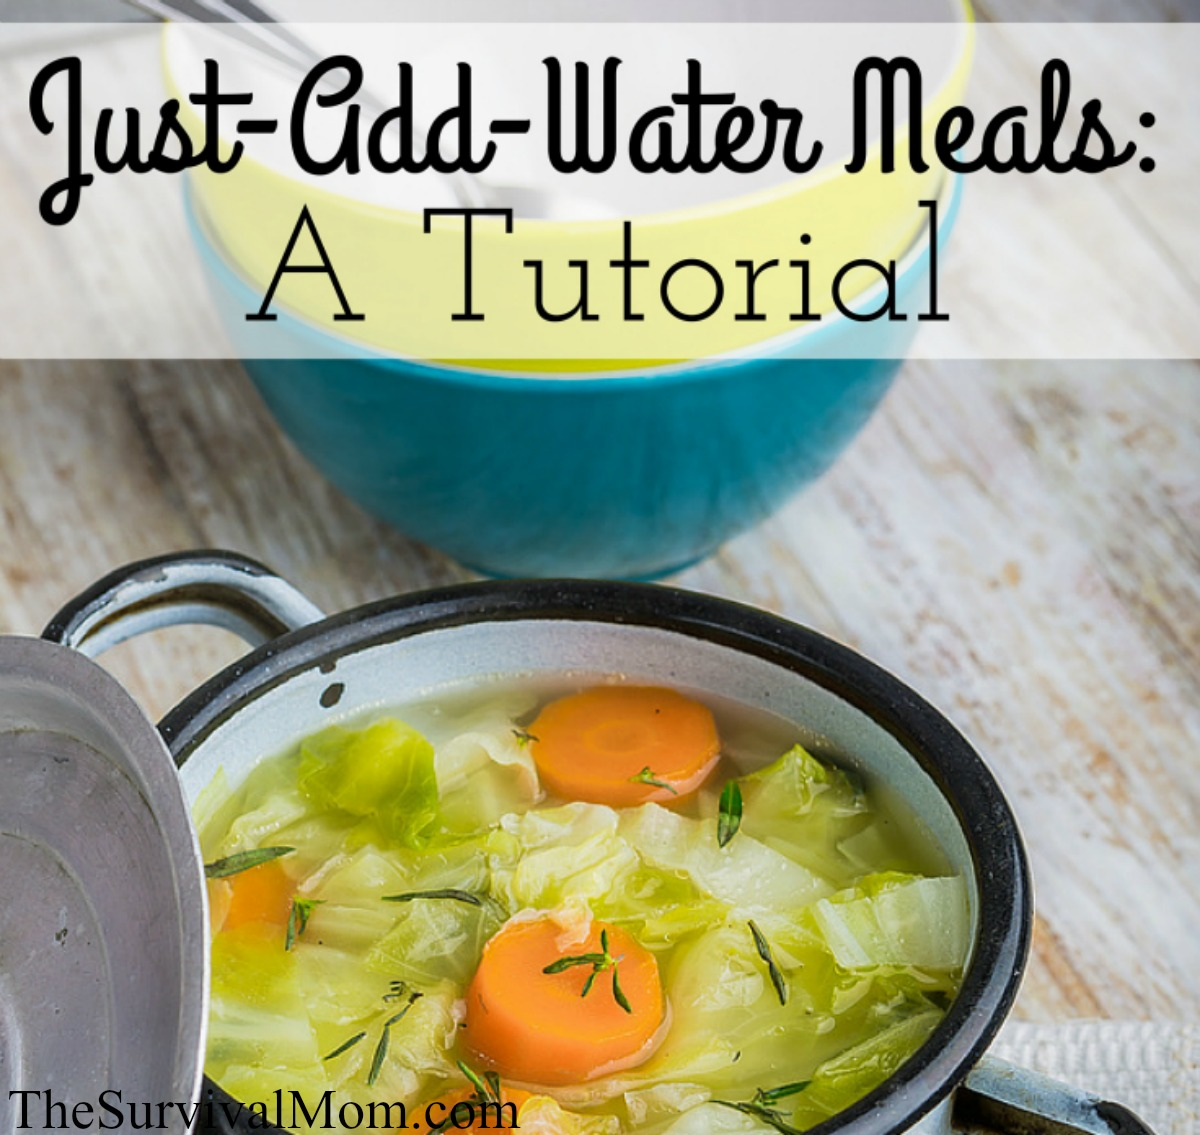 add water meals FB size